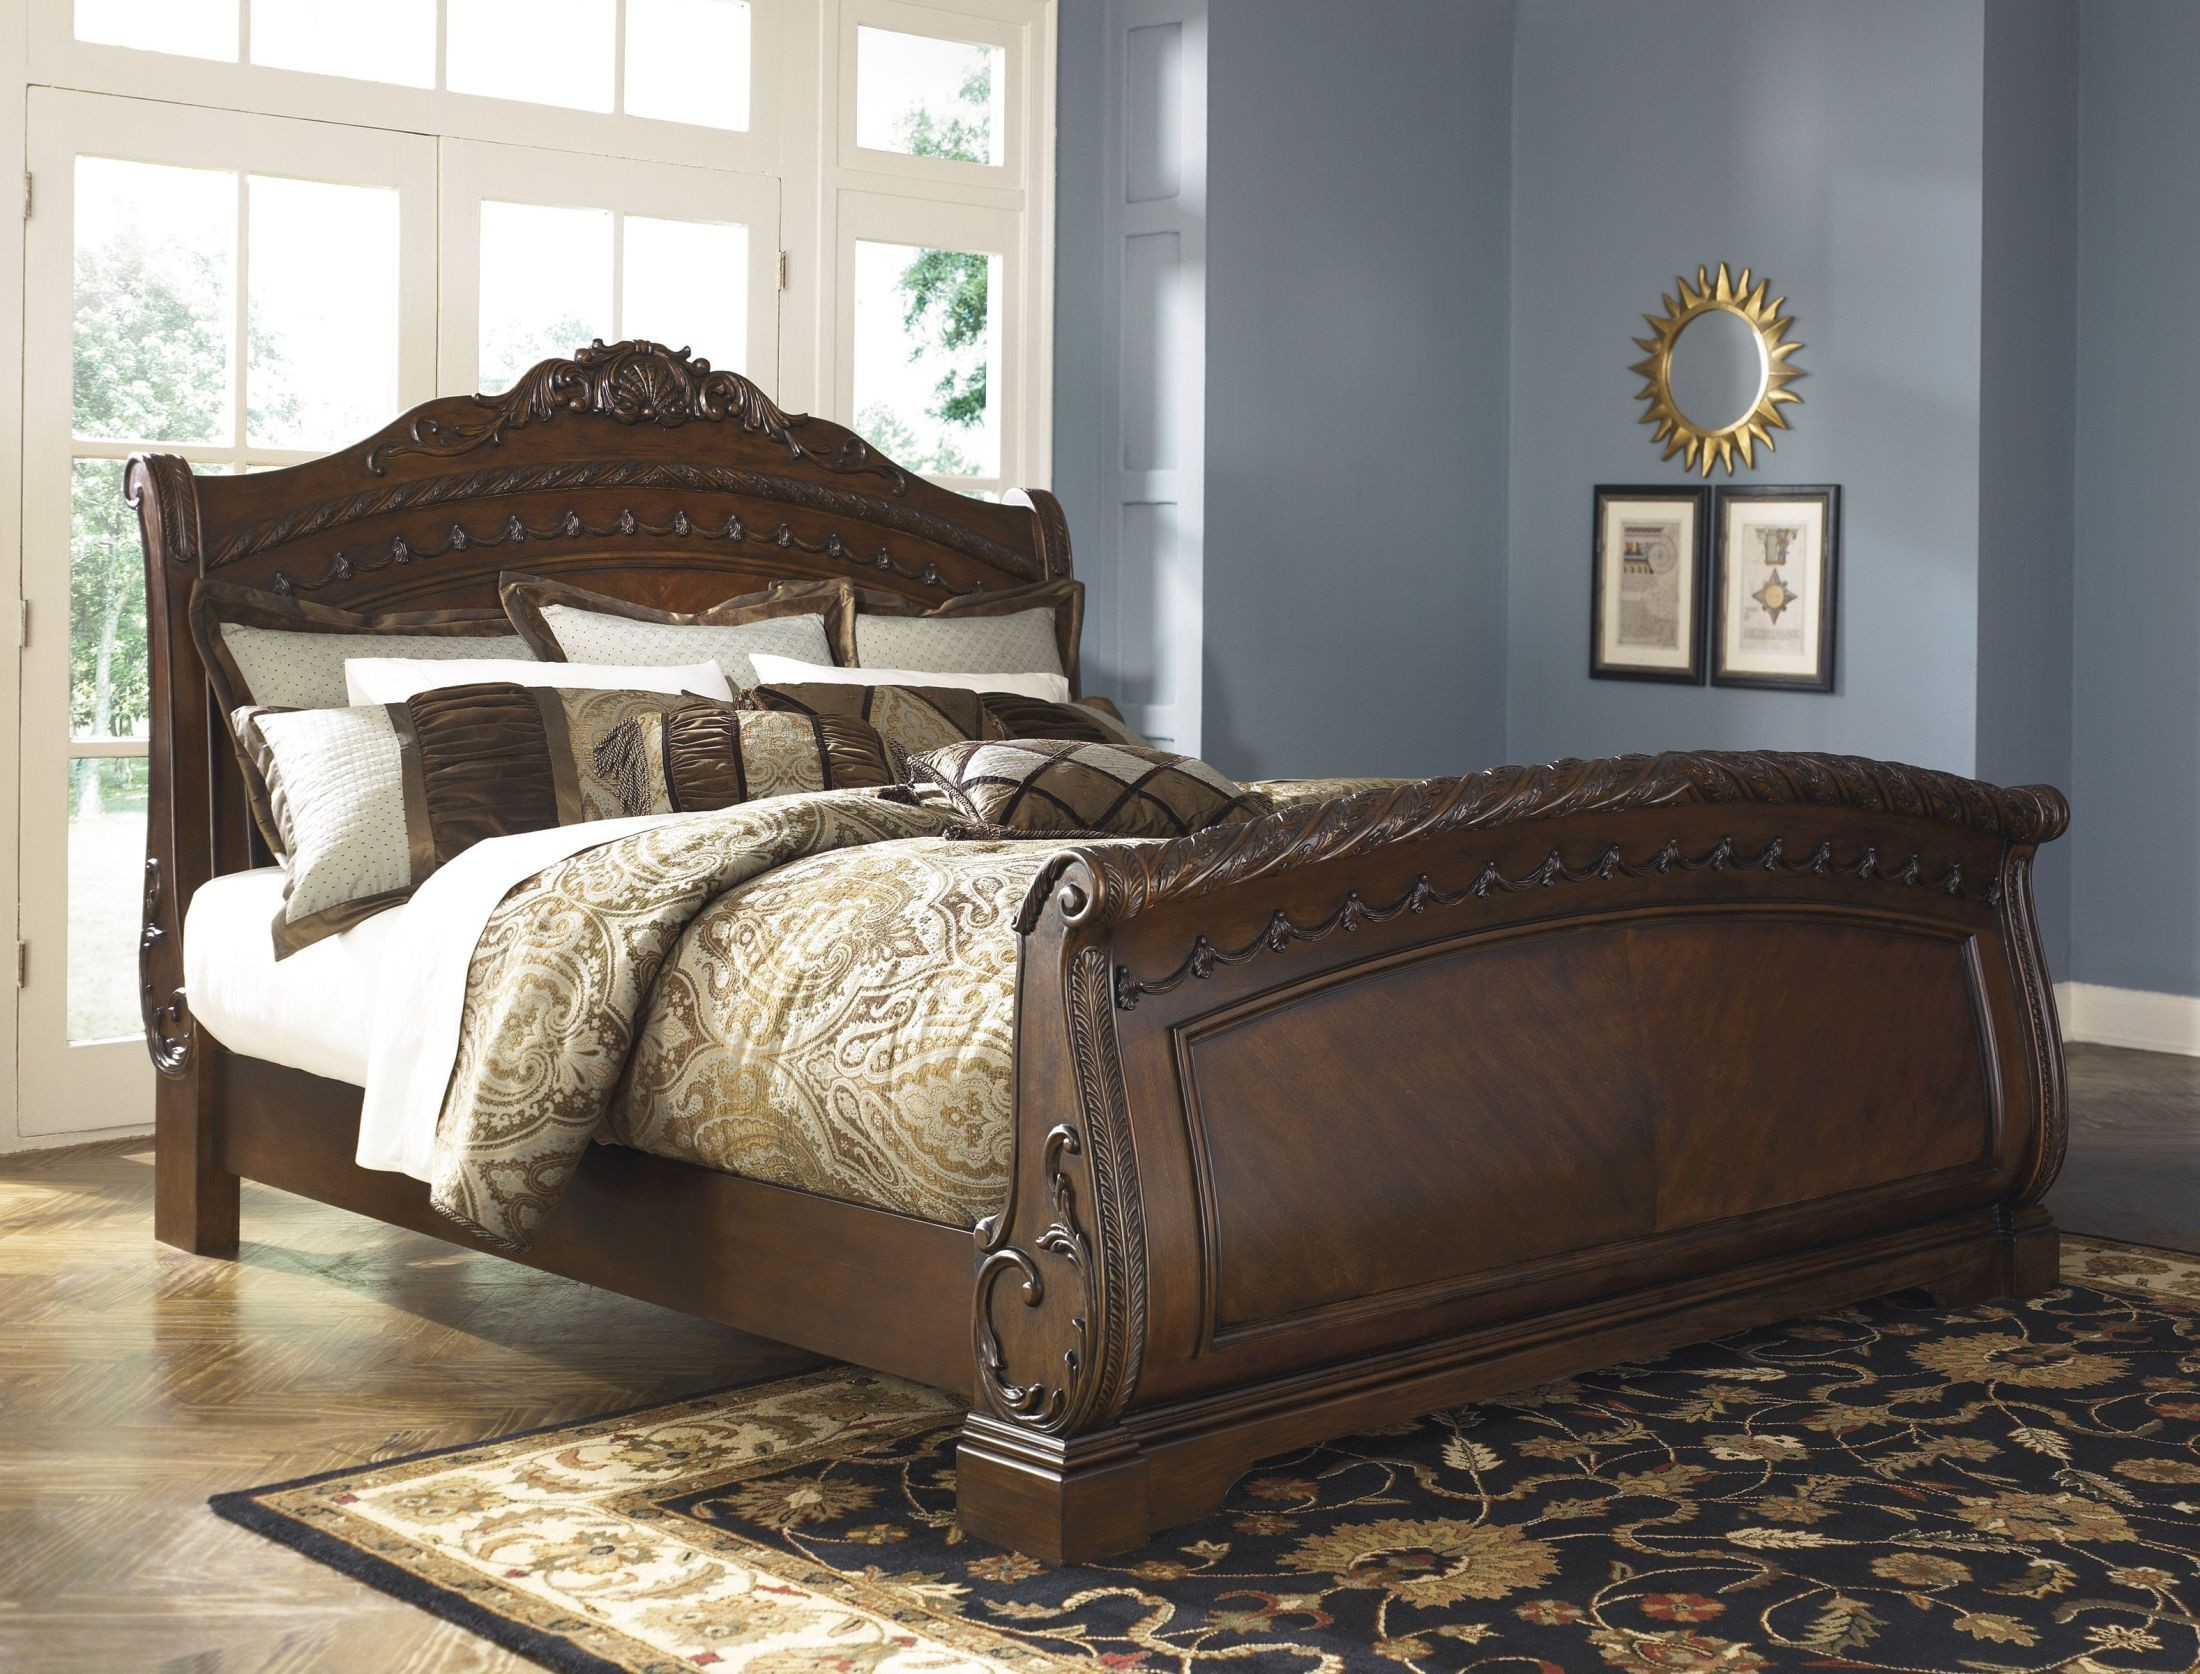 North Shore Sleigh Bedroom Set from Ashley B553  Coleman Furniture